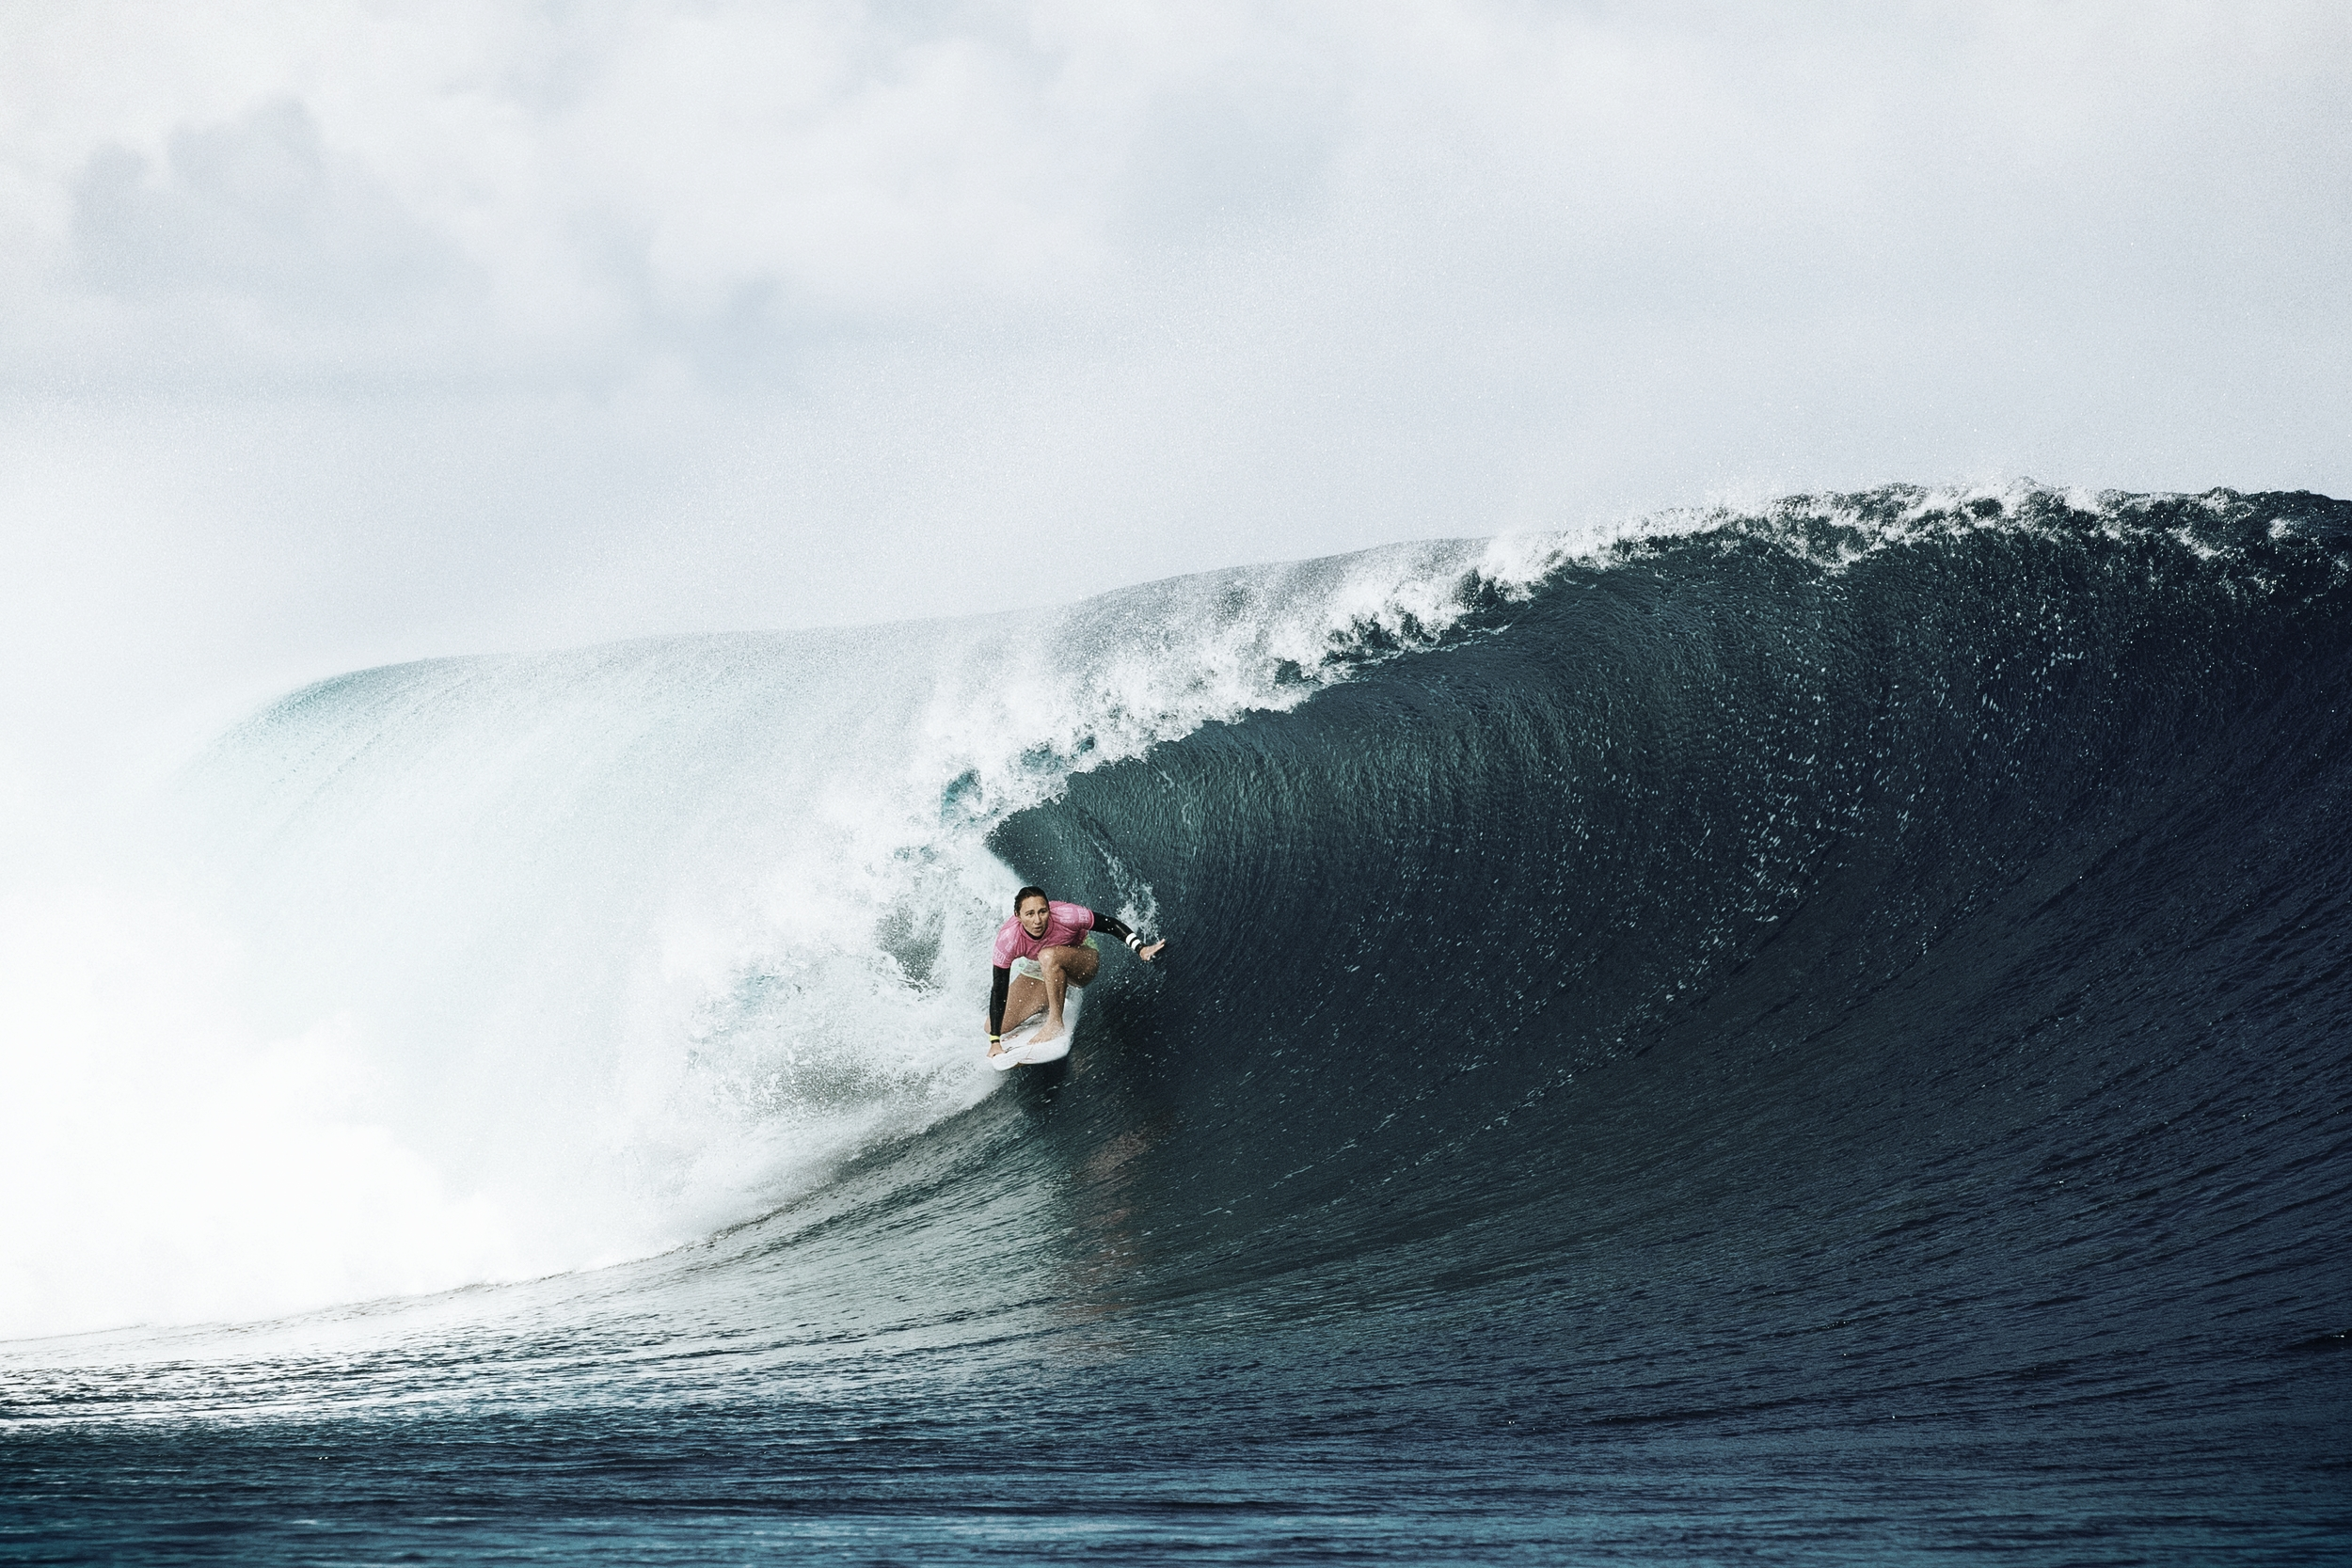 Carissa Moore shredding like a boss during the Fiji event of the WSL tour // photo. WSL/Sloane